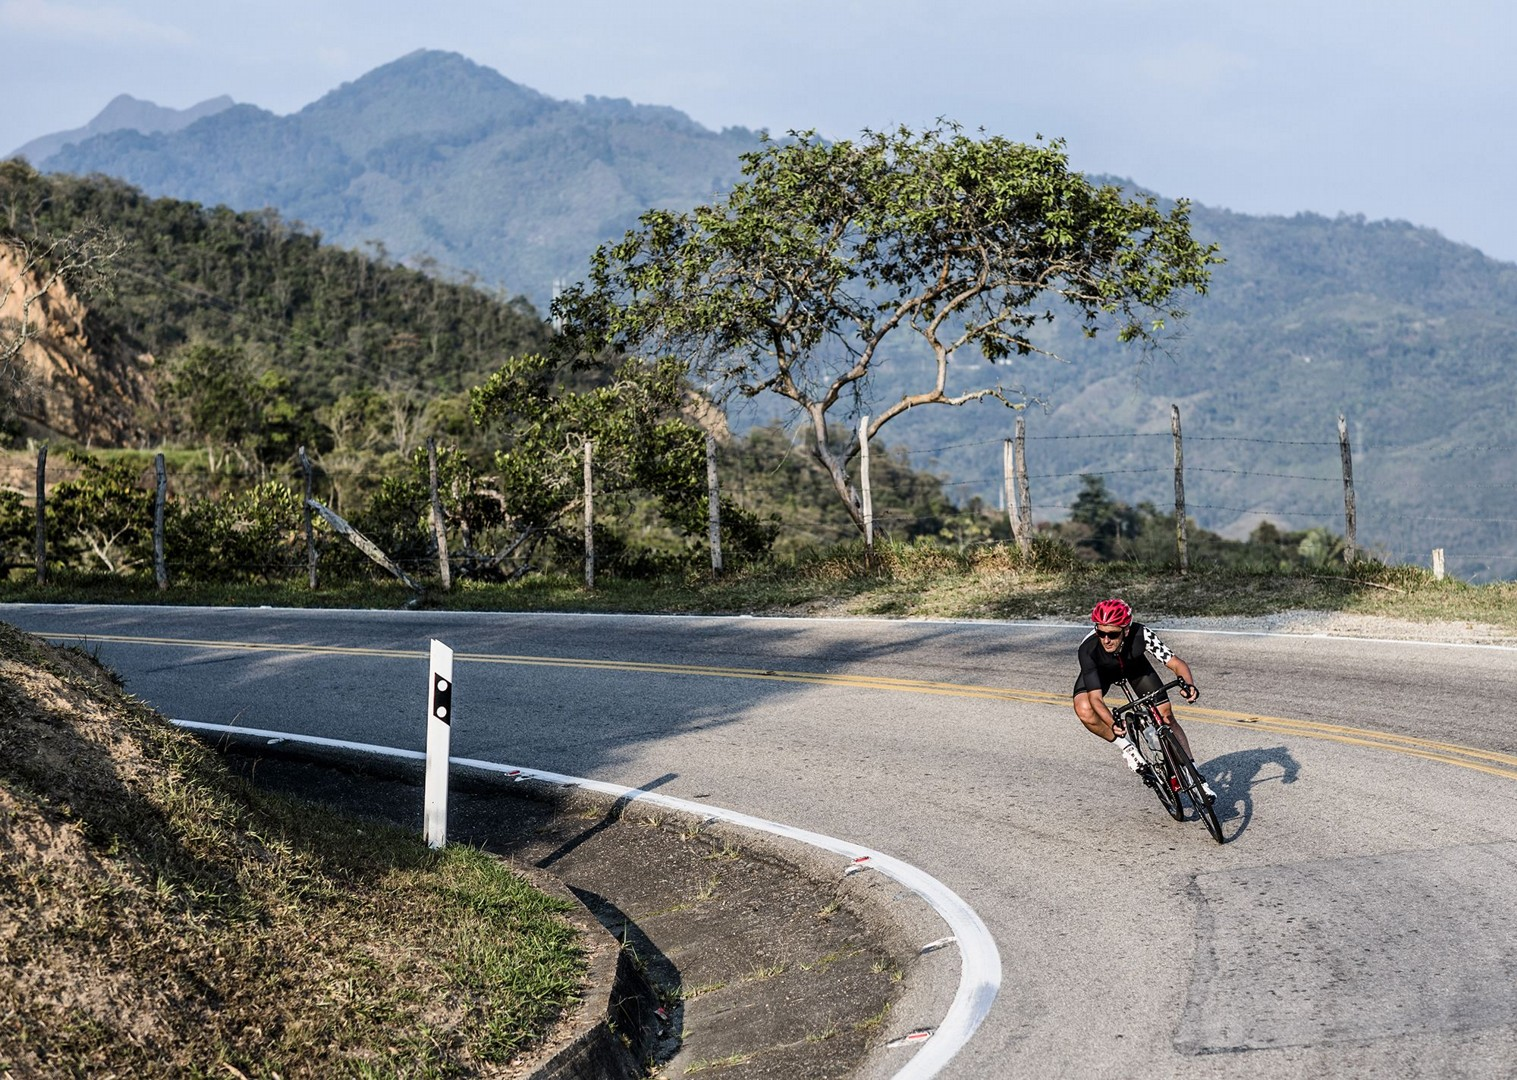 day_3_006.jpg - Colombia - Emerald Mountains - Road Cycling